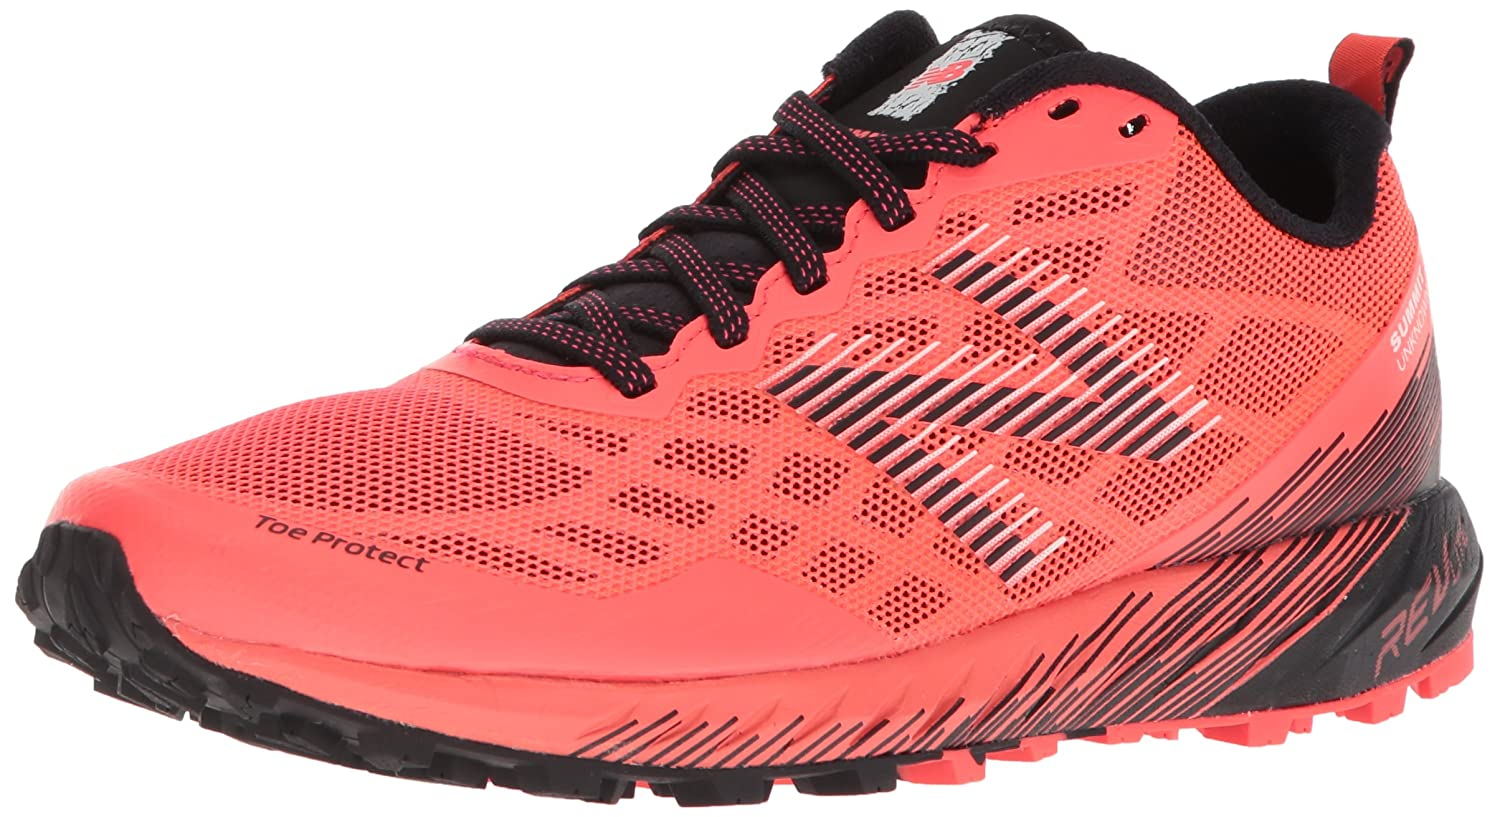 New Balance Women's Summit Unknown Trail Running Shoe B0751Q8LP2 6.5 D US|Pink/Black